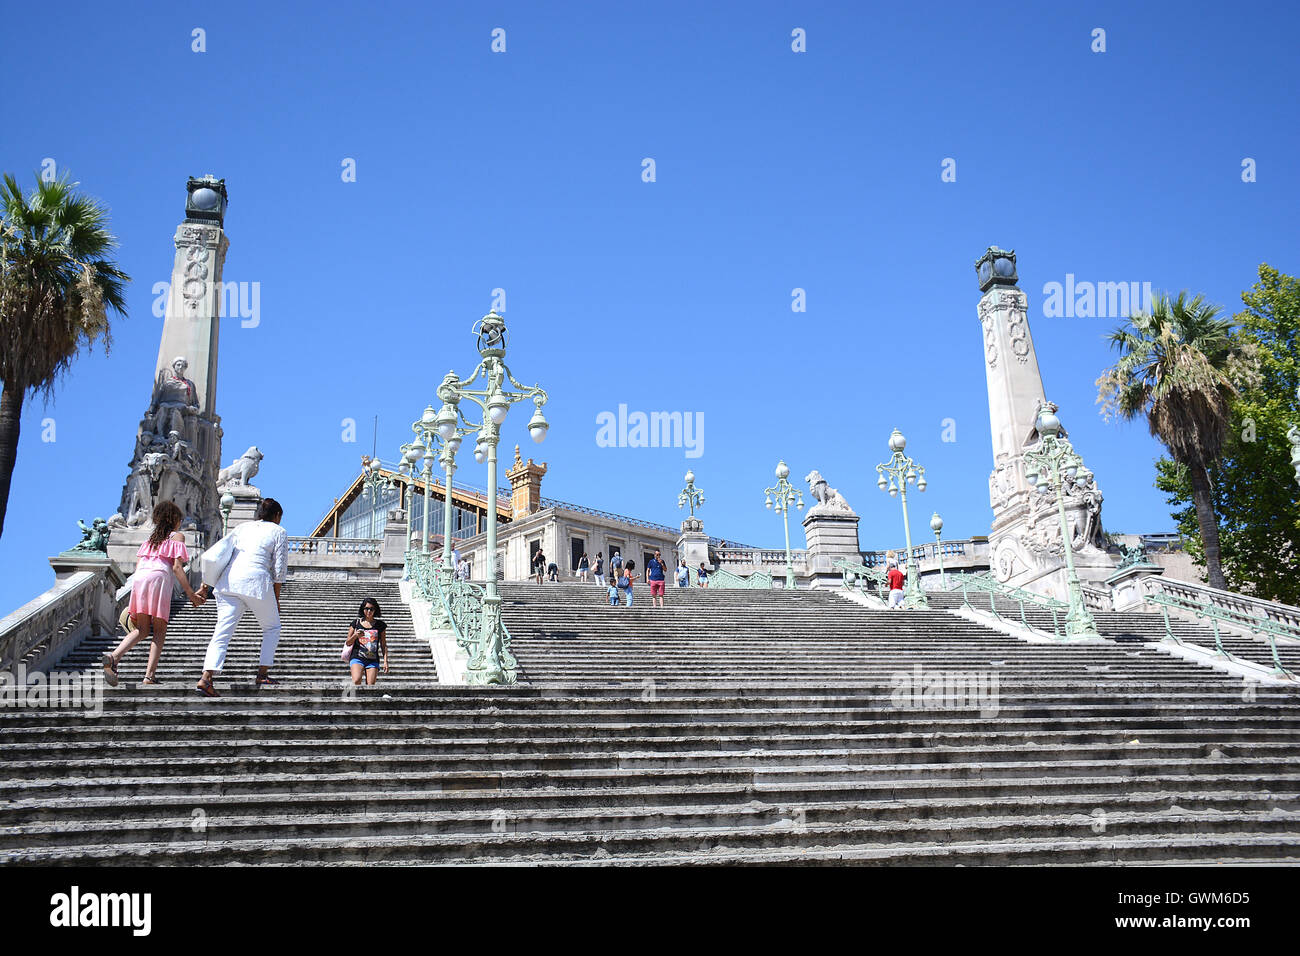 stairway of saint charles railway station marseille bouches du rhone stock photo royalty free. Black Bedroom Furniture Sets. Home Design Ideas